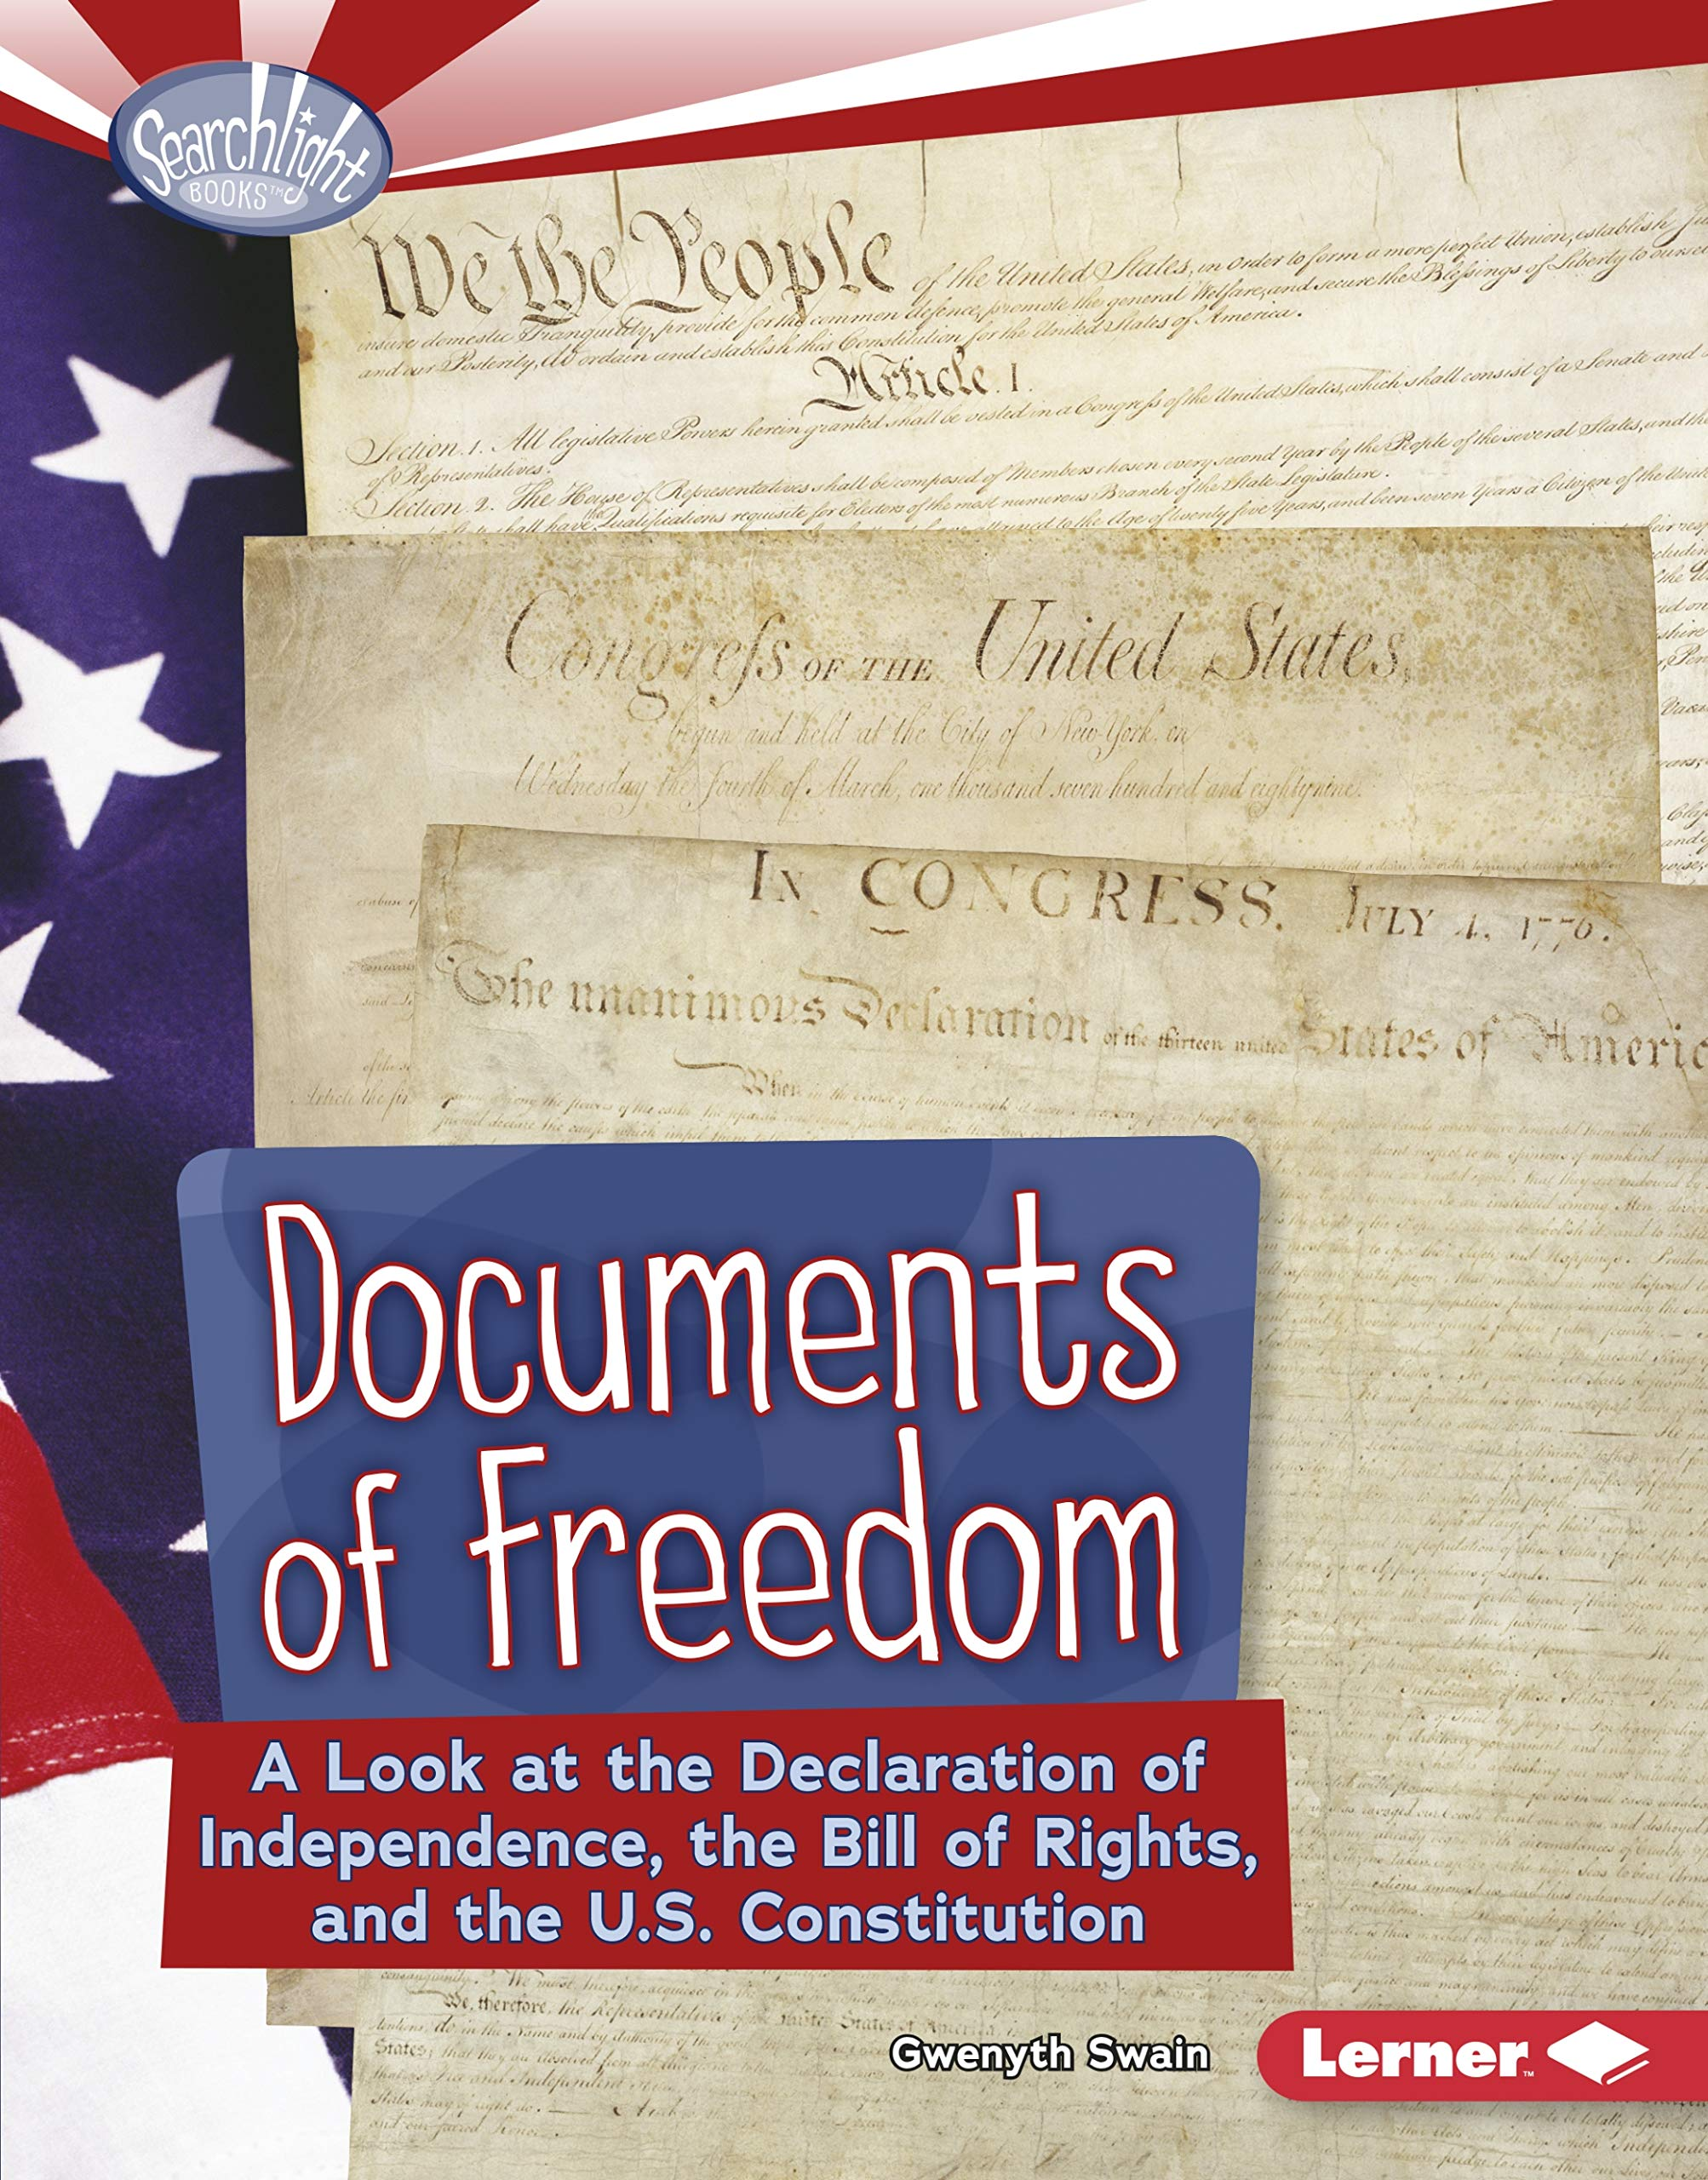 Documents of Freedom: A Look at the Declaration of Independence, the Bill of Rights, and the U.s. Constitution (Searchlight Books - How Does Government Work?) pdf